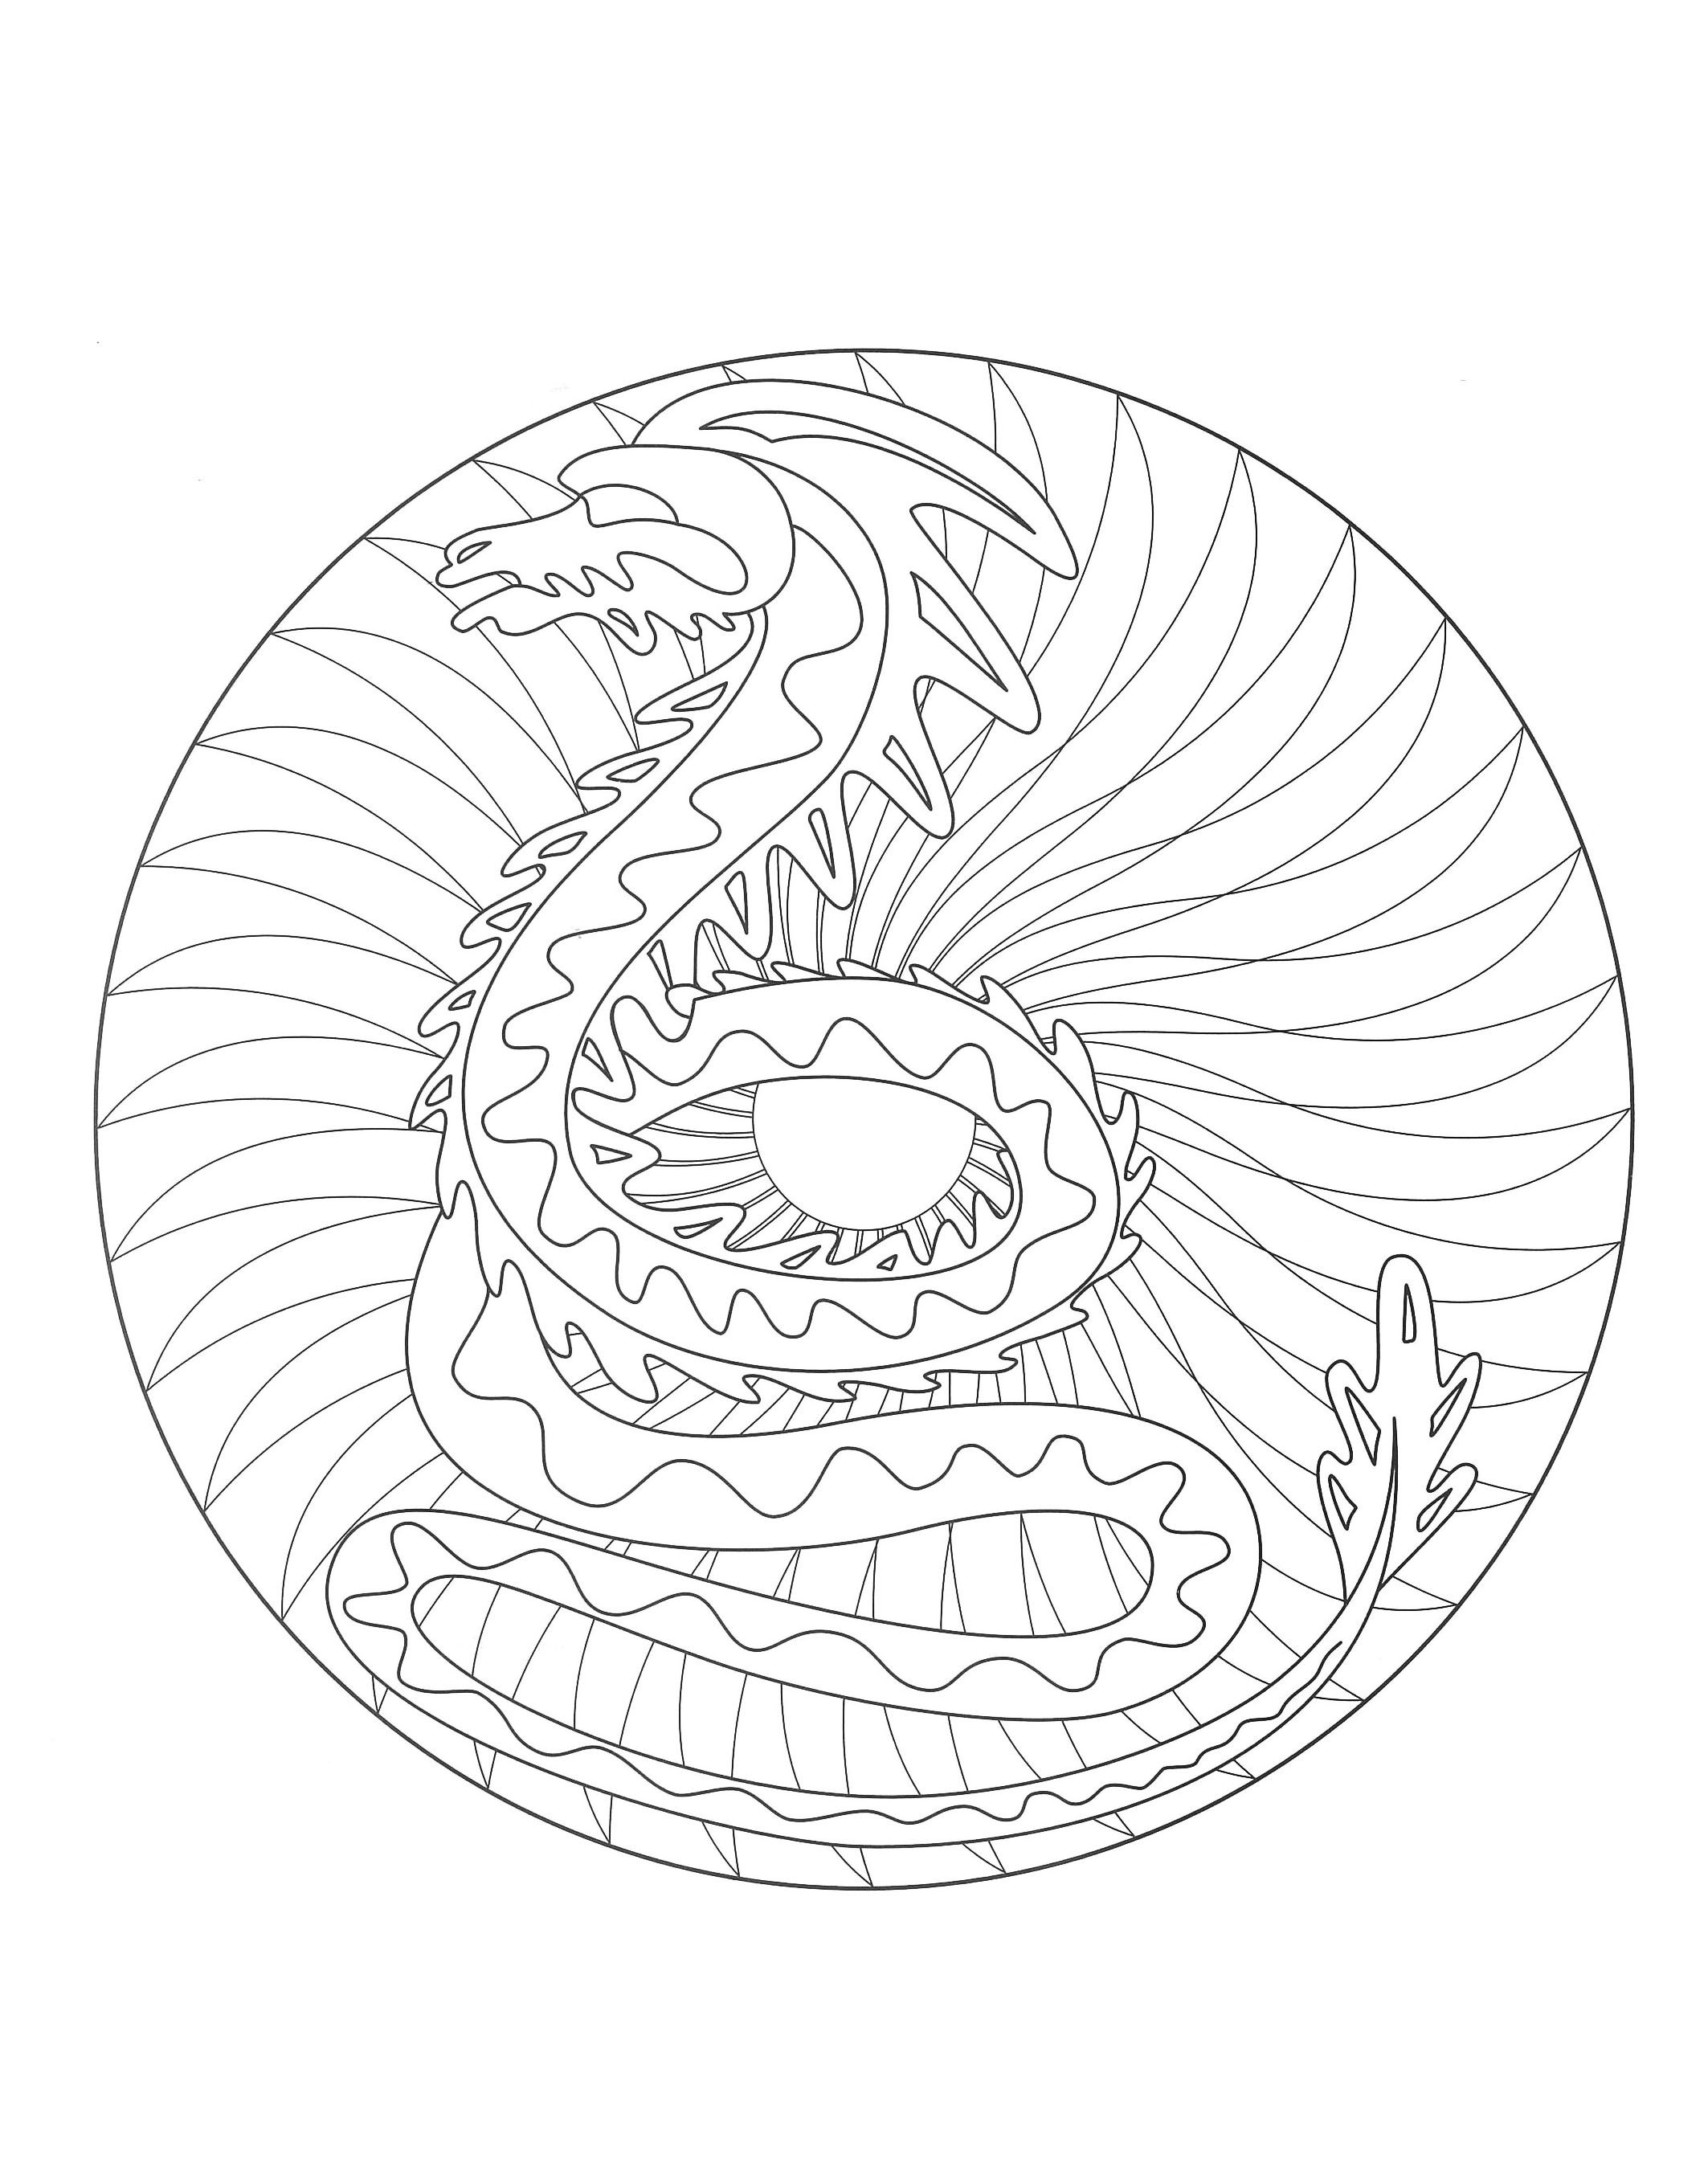 Mandala Dragon 2 Mandalas Coloring Pages For Adults Just Color